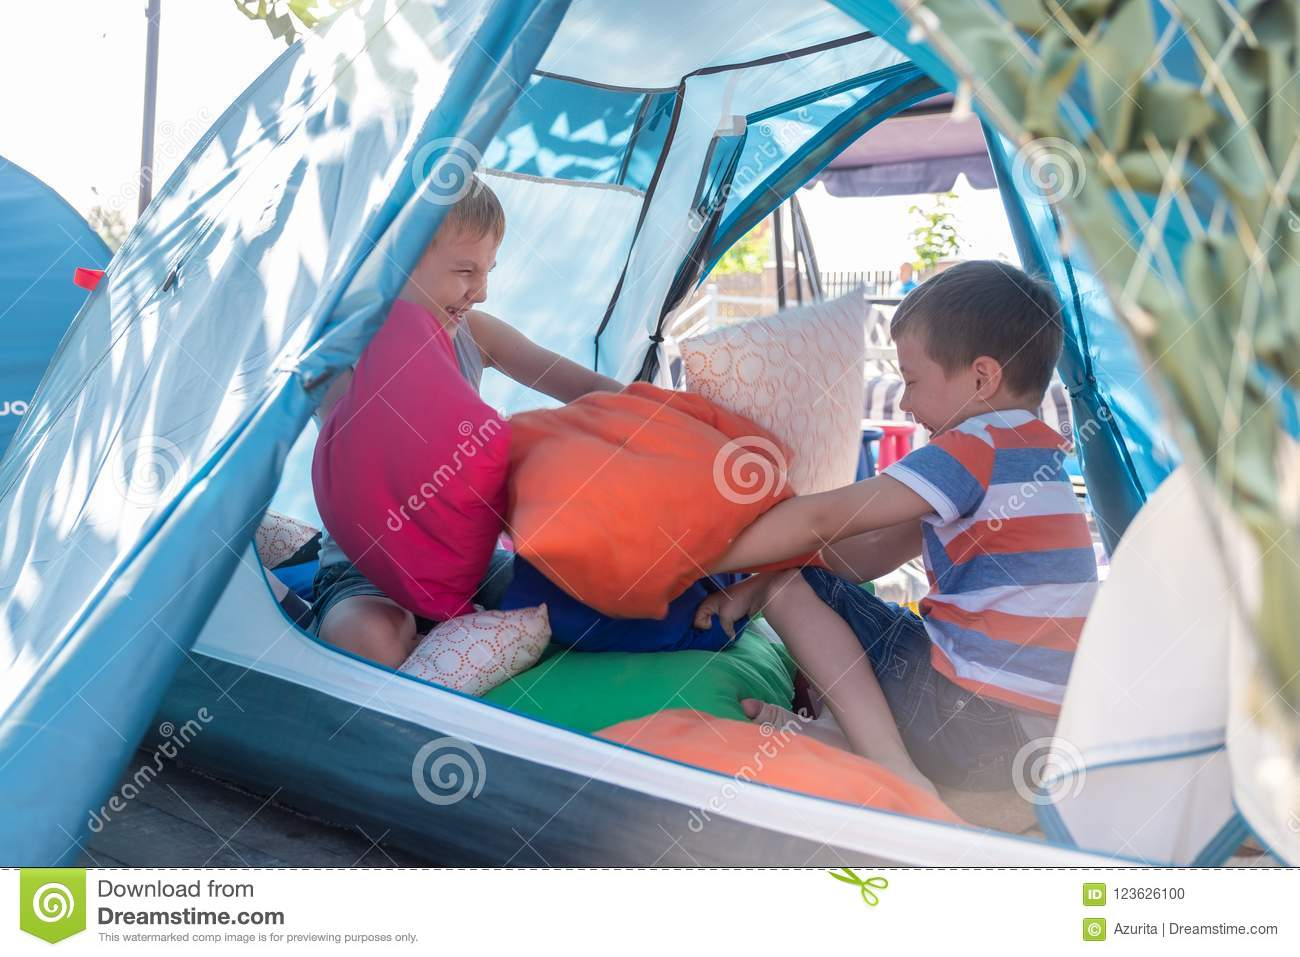 Cute boys playing with pillow inside tent at backyard & Portrait Of Cute Boy Inside Tent At Backyard Stock Photo - Image of ...